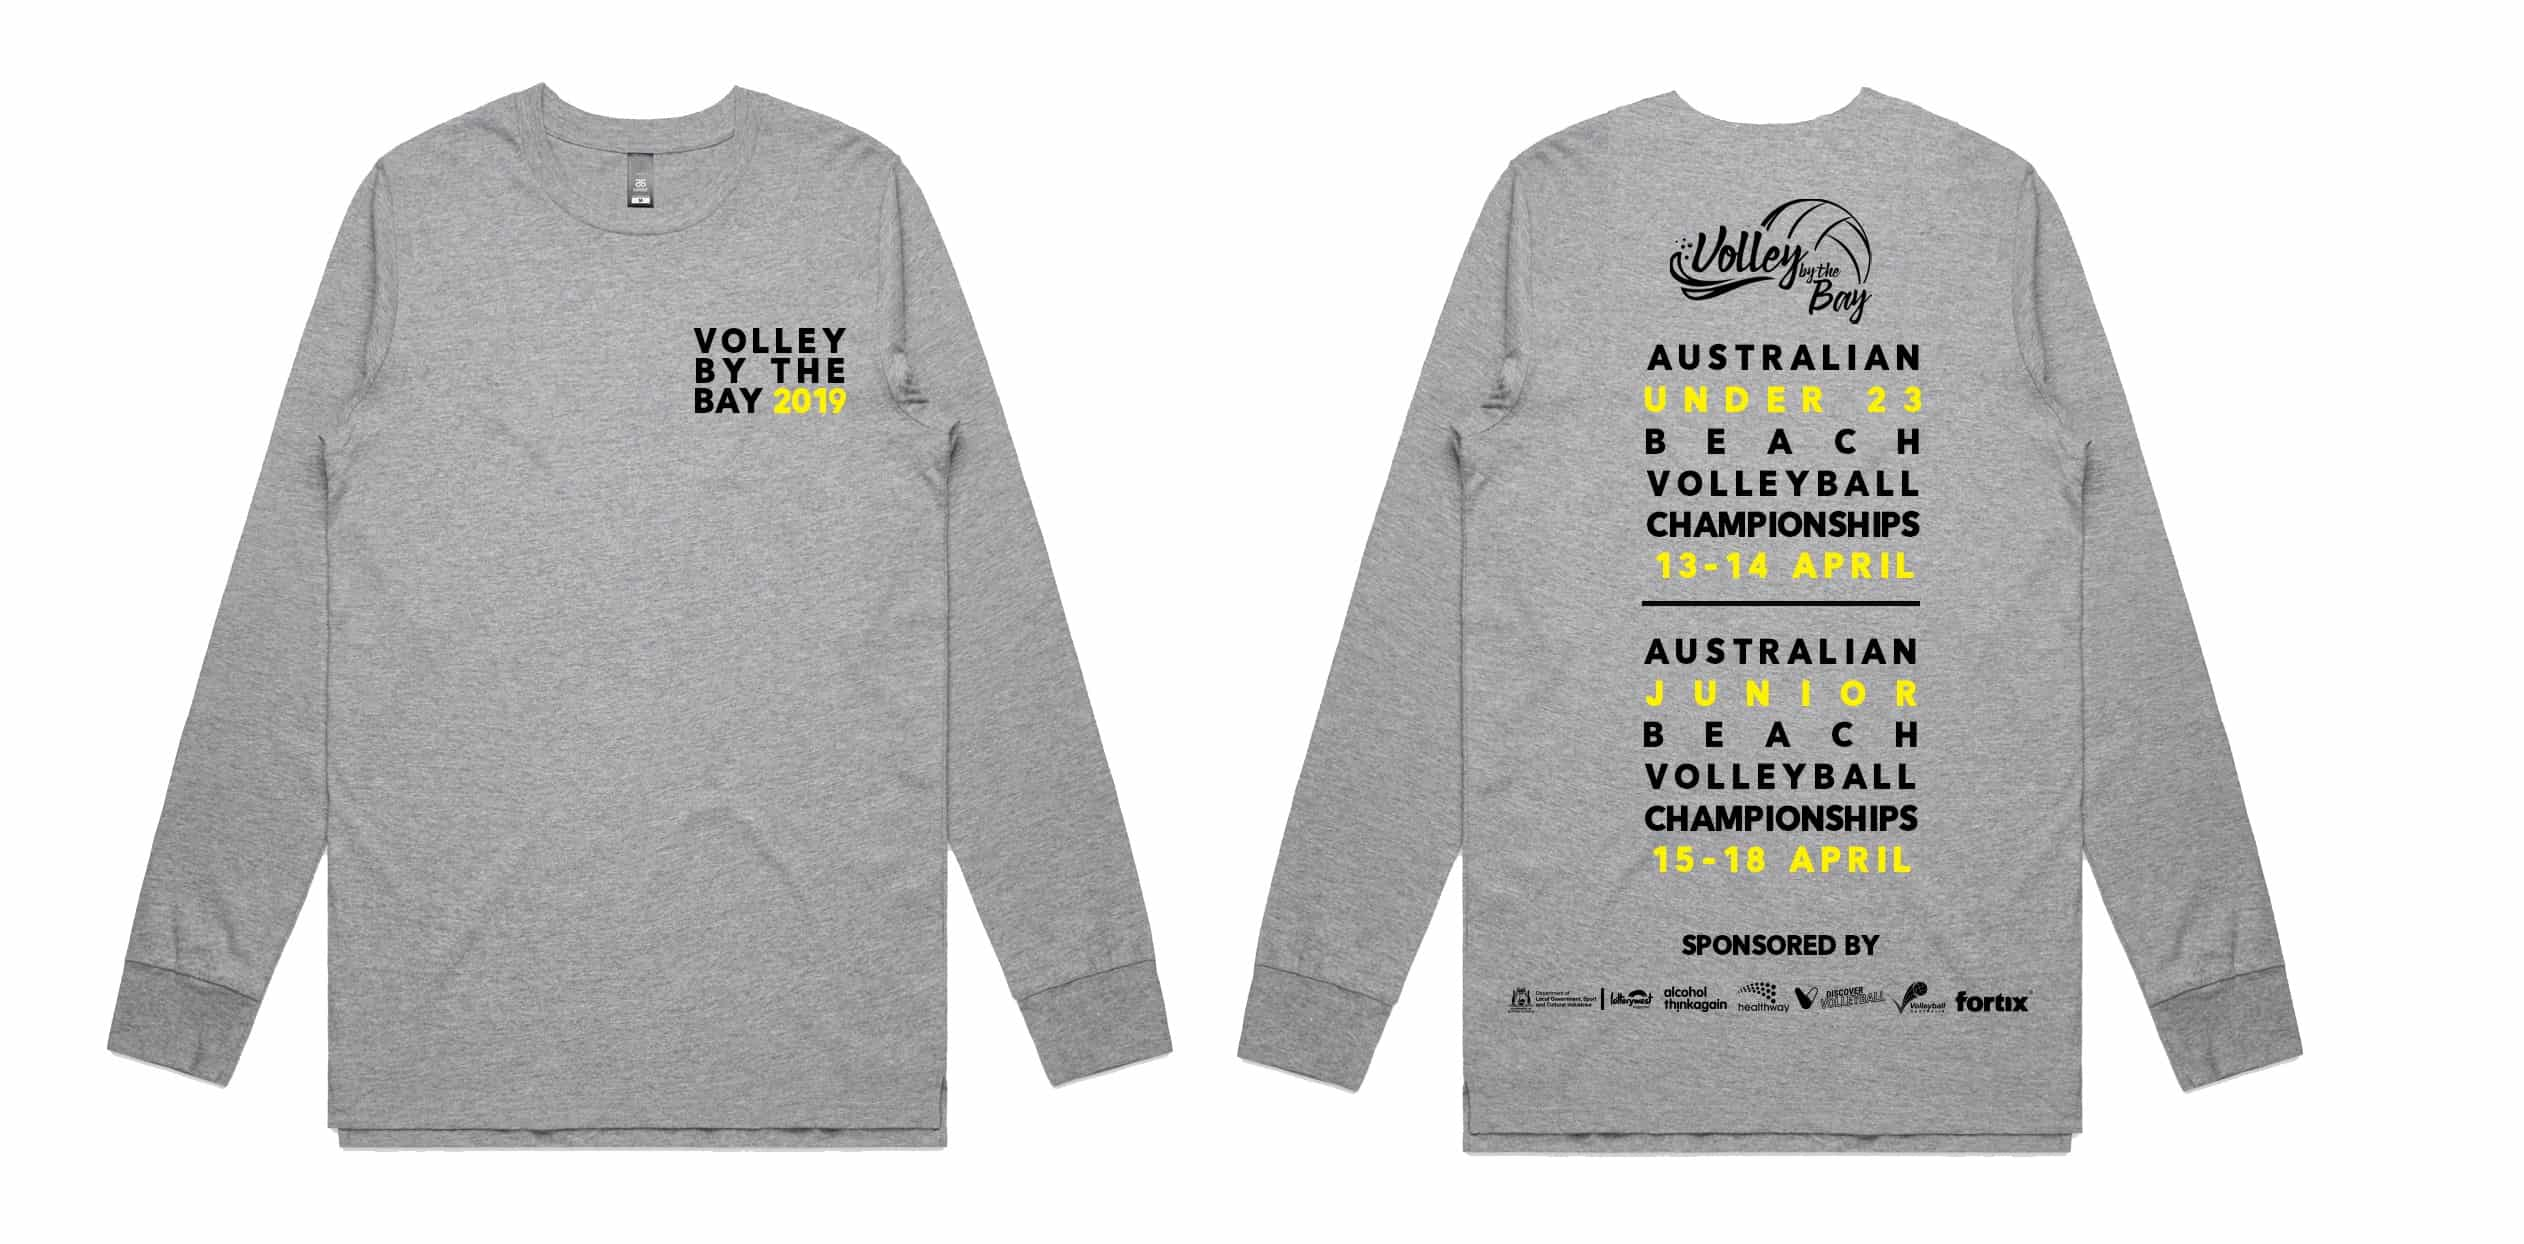 Volley by the Bay - Grey Long Sleeve Tee 1